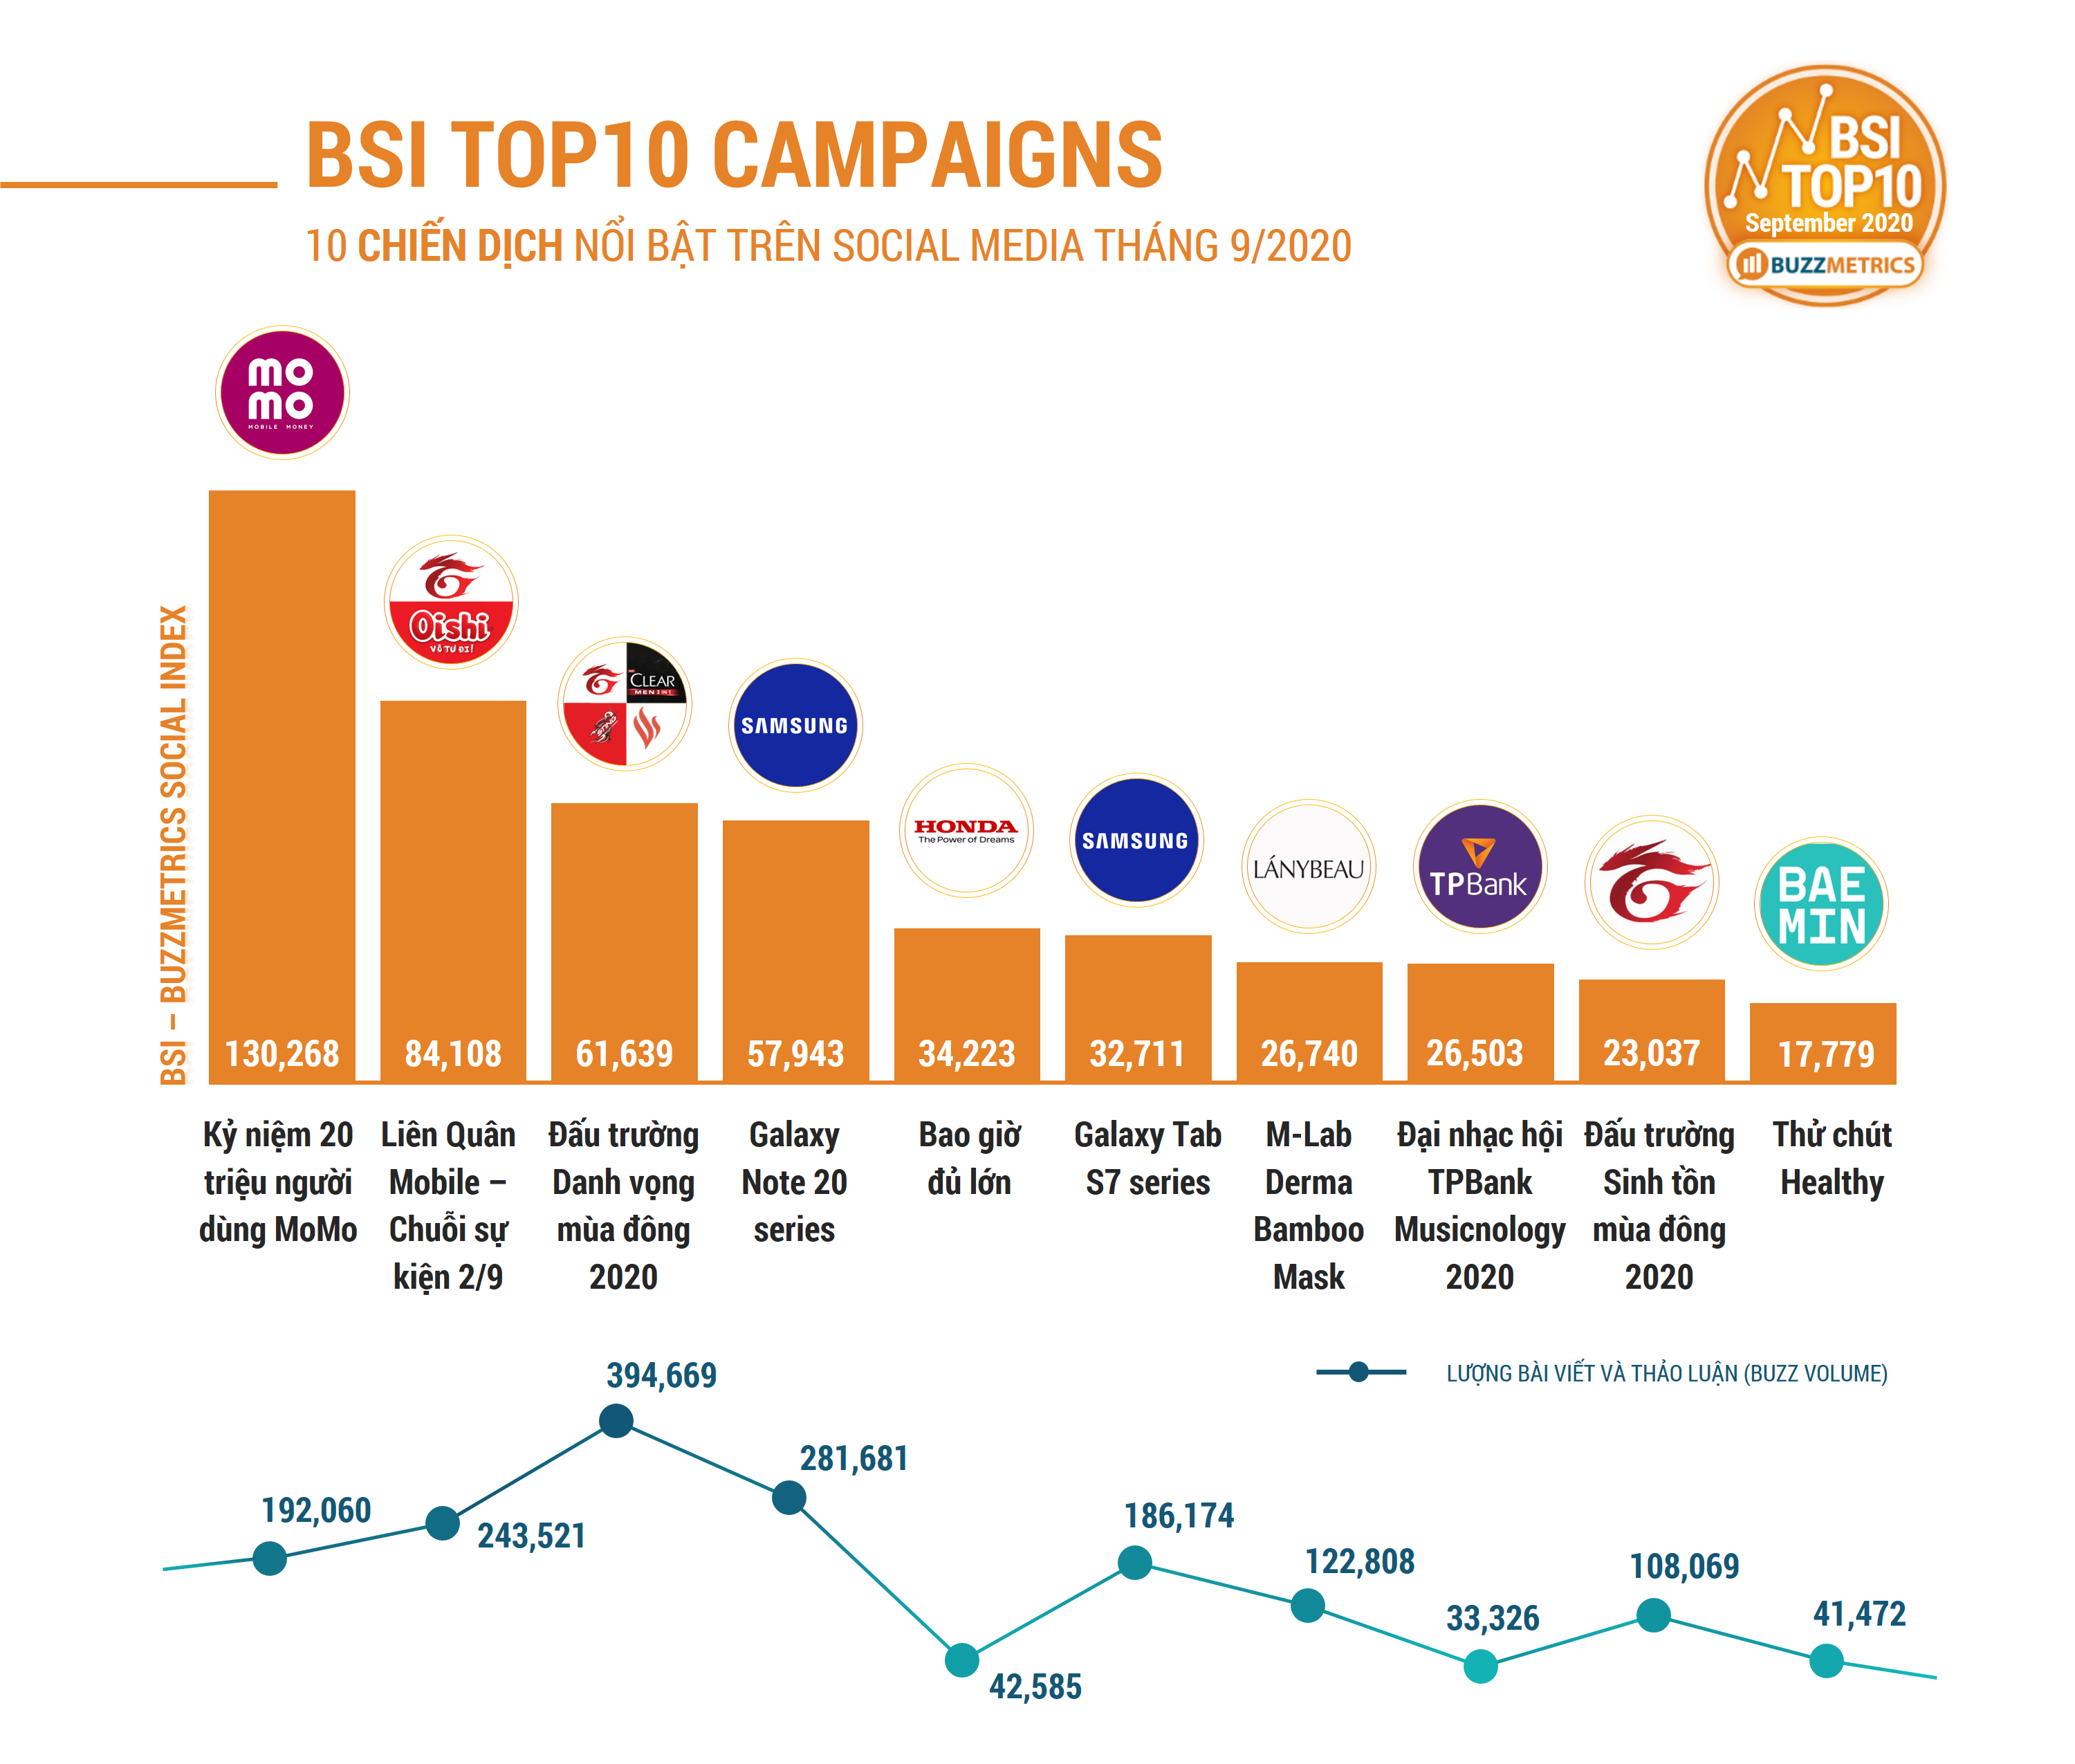 NEW_BSI_TOP10 SEP 2020 CAMPAIGNS CHART1